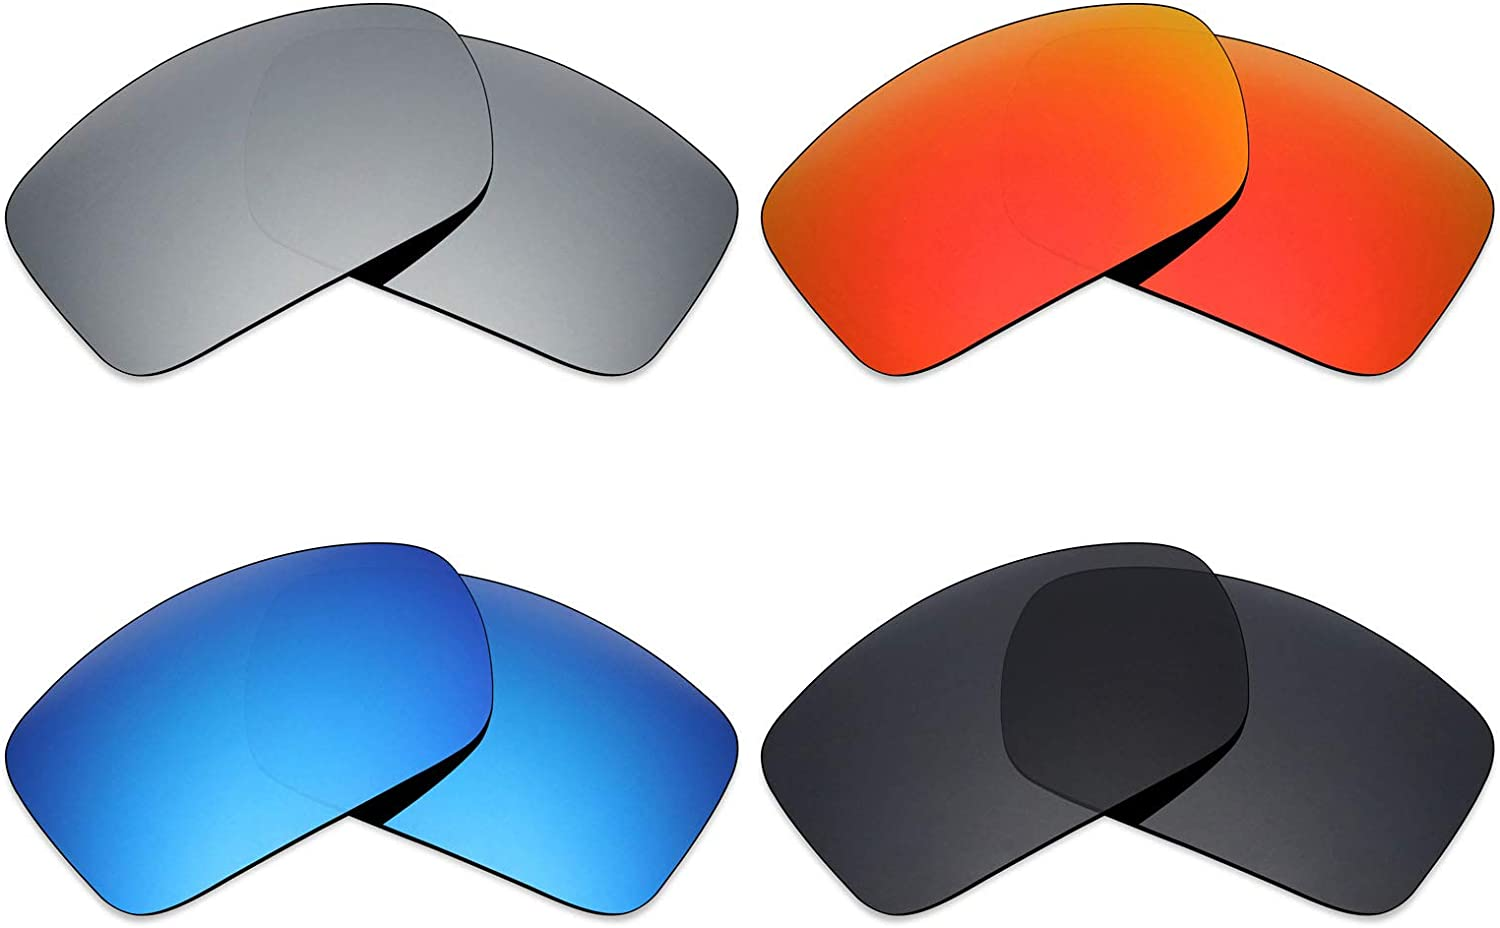 Mryok 4 Pair Polarized Replacement Lenses for Arnette Freezer AN4155 Sunglass - Stealth Black/Fire Red/Ice Blue/Silver Titanium